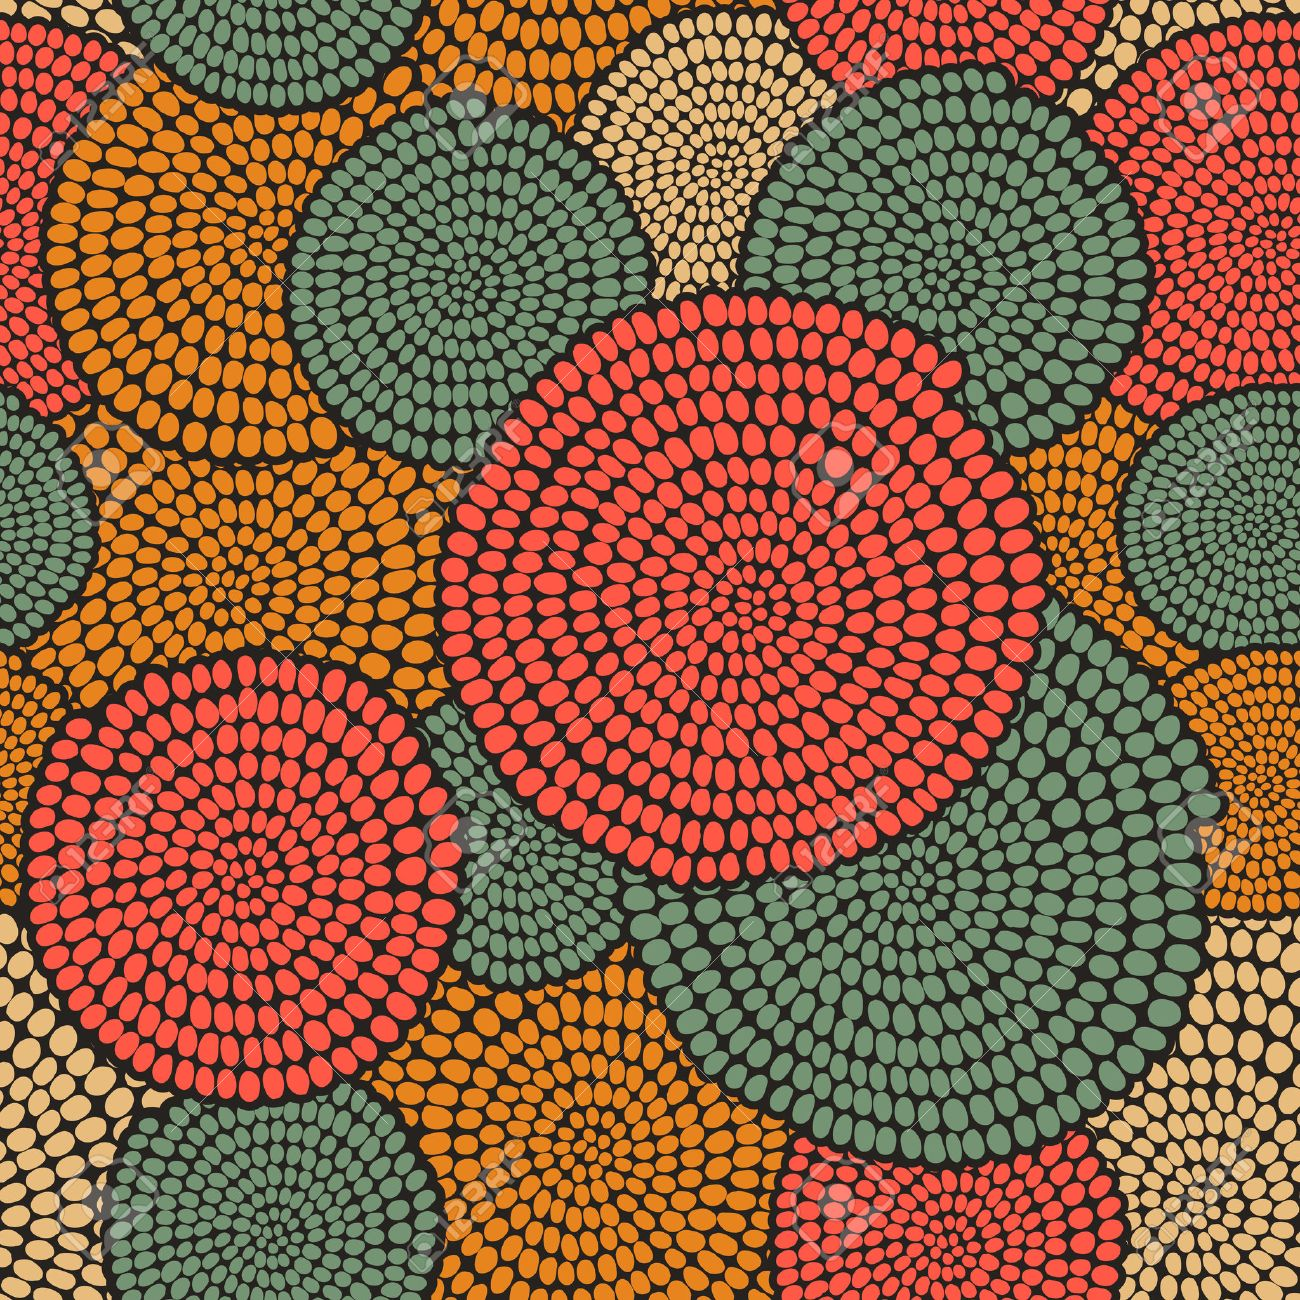 Hand drawn Traditional African Ornament. Stylized texture with arcs and circles. Plain warm background for decoration or backdrop. - 53916722